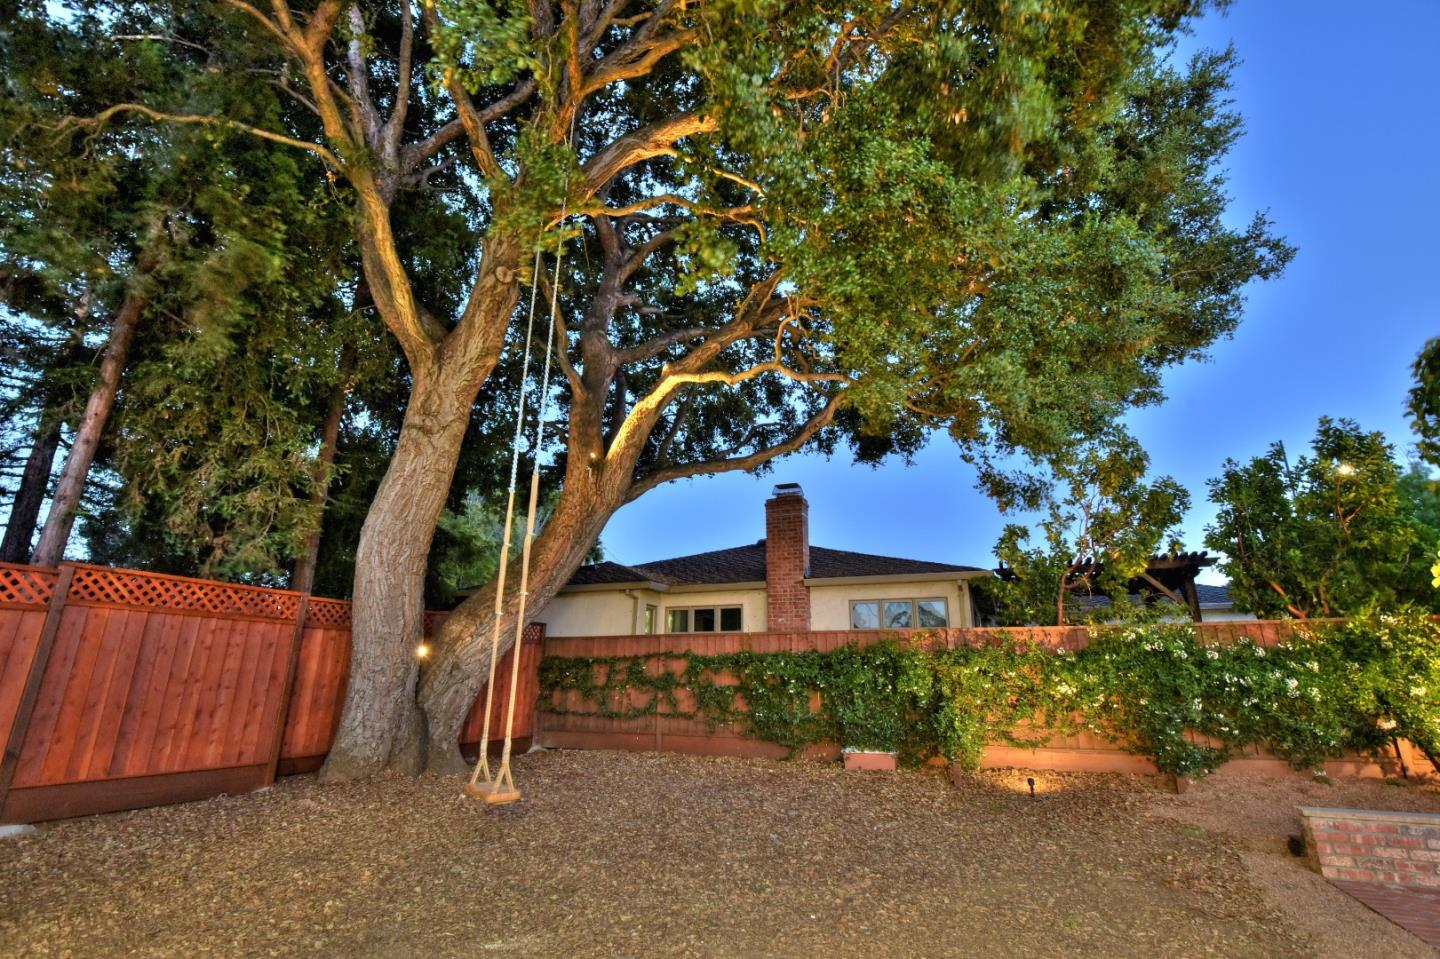 Additional photo for property listing at 1641 Hollingsworth Dr  MOUNTAIN VIEW, CALIFORNIA 94040